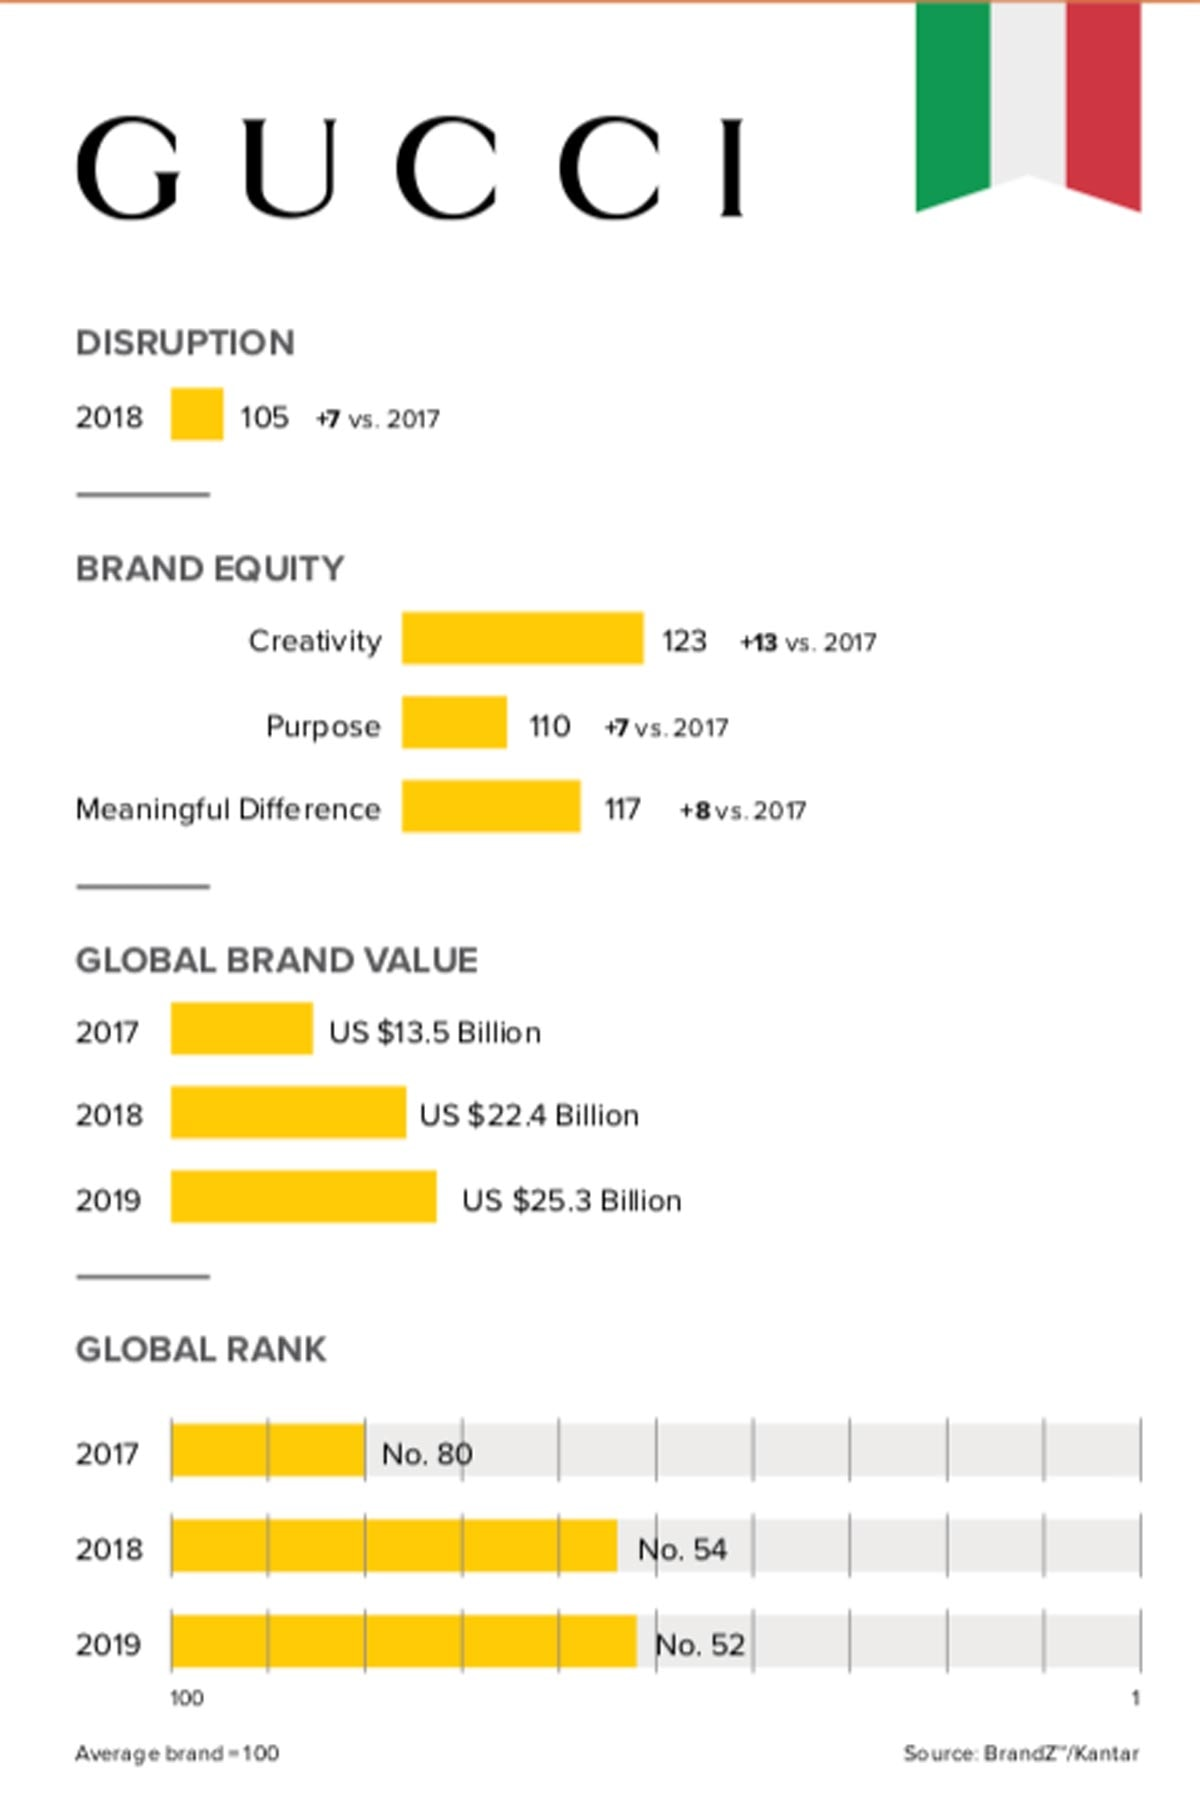 Luxury is fastest growing category in top global 100 brands